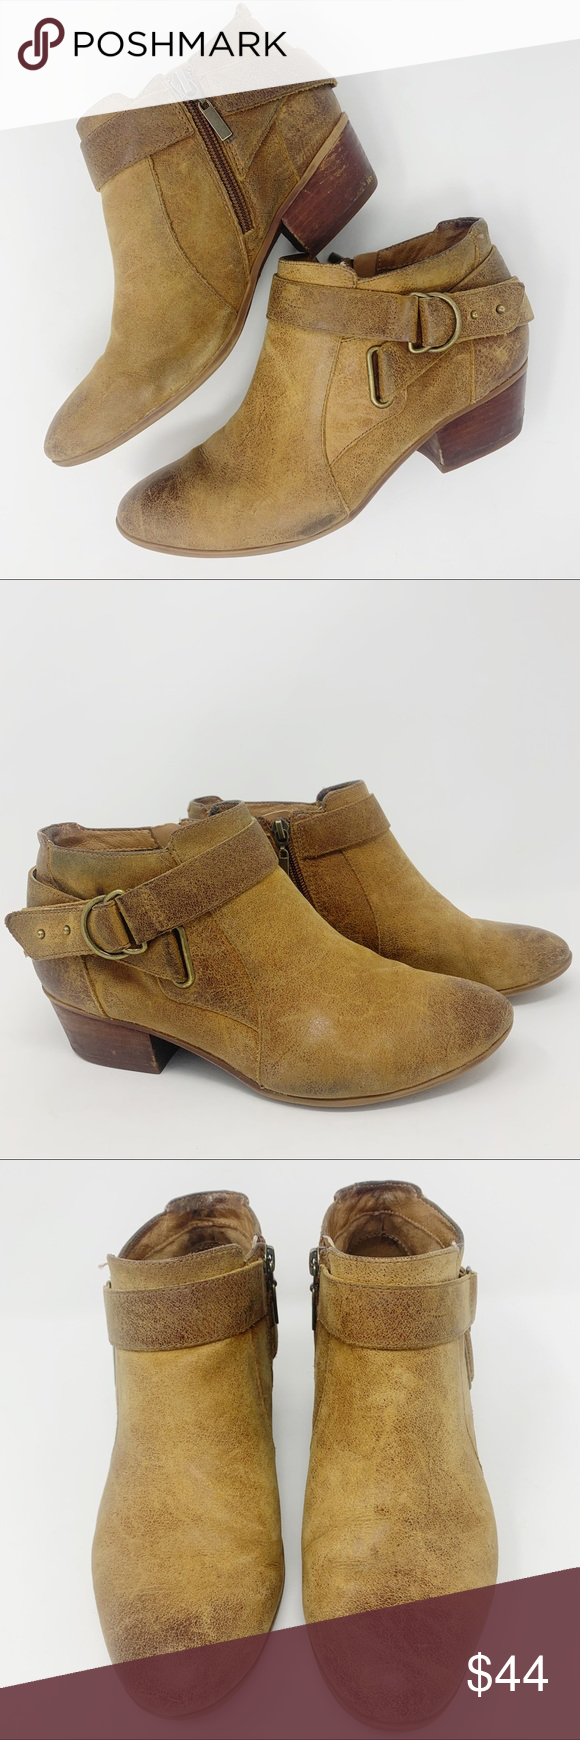 Clark's Artisan Tan Leather Ankle Boots Sz 7.5 Super cute and very well made Ankle Boots.   Perfect fall/winter boots to wear with skinny jeans.   Excellent pre-owned condition, lots of life left!   Smoke free home!   Bundle and save! Clarks Shoes Ankle Boots & Booties #skinnyjeansandankleboots Clark's Artisan Tan Leather Ankle Boots Sz 7.5 Super cute and very well made Ankle Boots.   Perfect fall/winter boots to wear with skinny jeans.   Excellent pre-owned condition, lots of life left!   S #skinnyjeansandankleboots